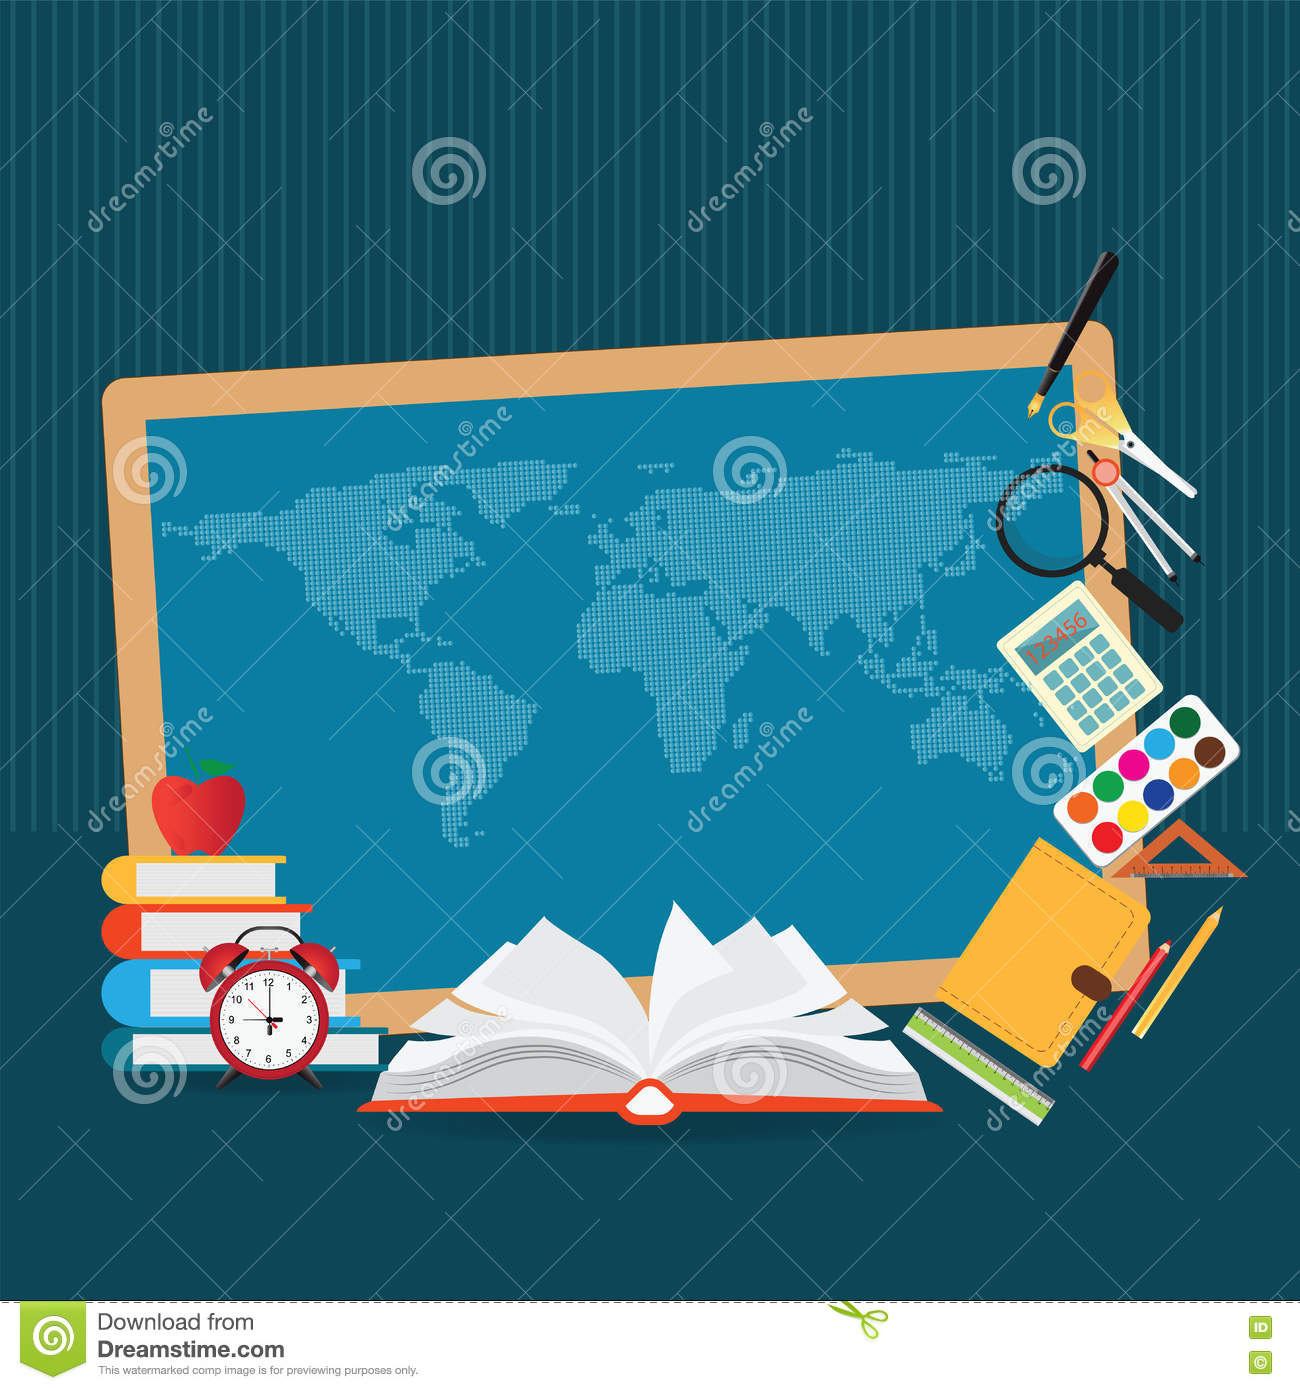 Education design background with world map stock vector education design background with world map gumiabroncs Image collections